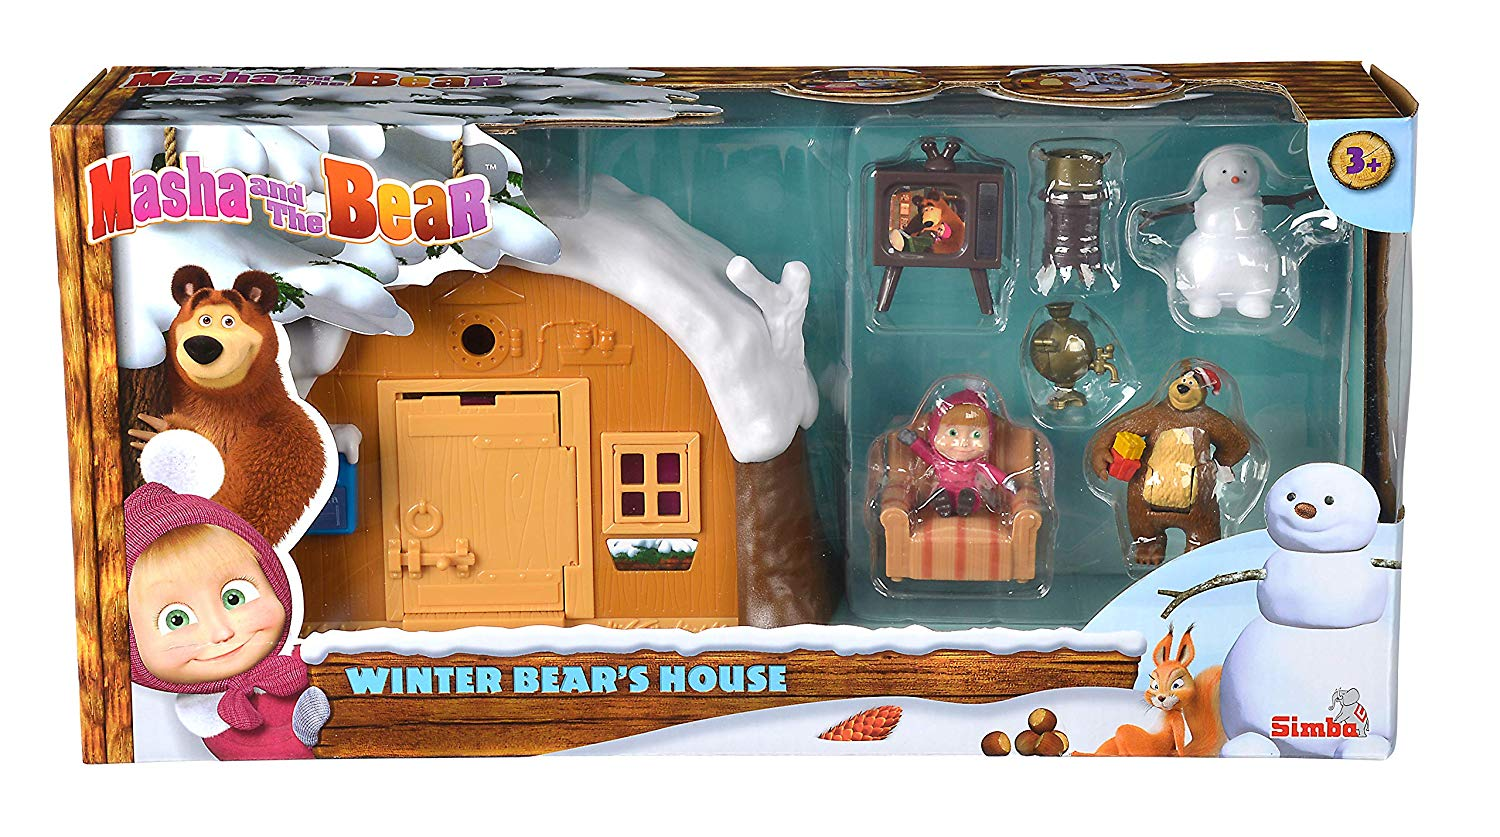 Winter Bears House Masha and Bear